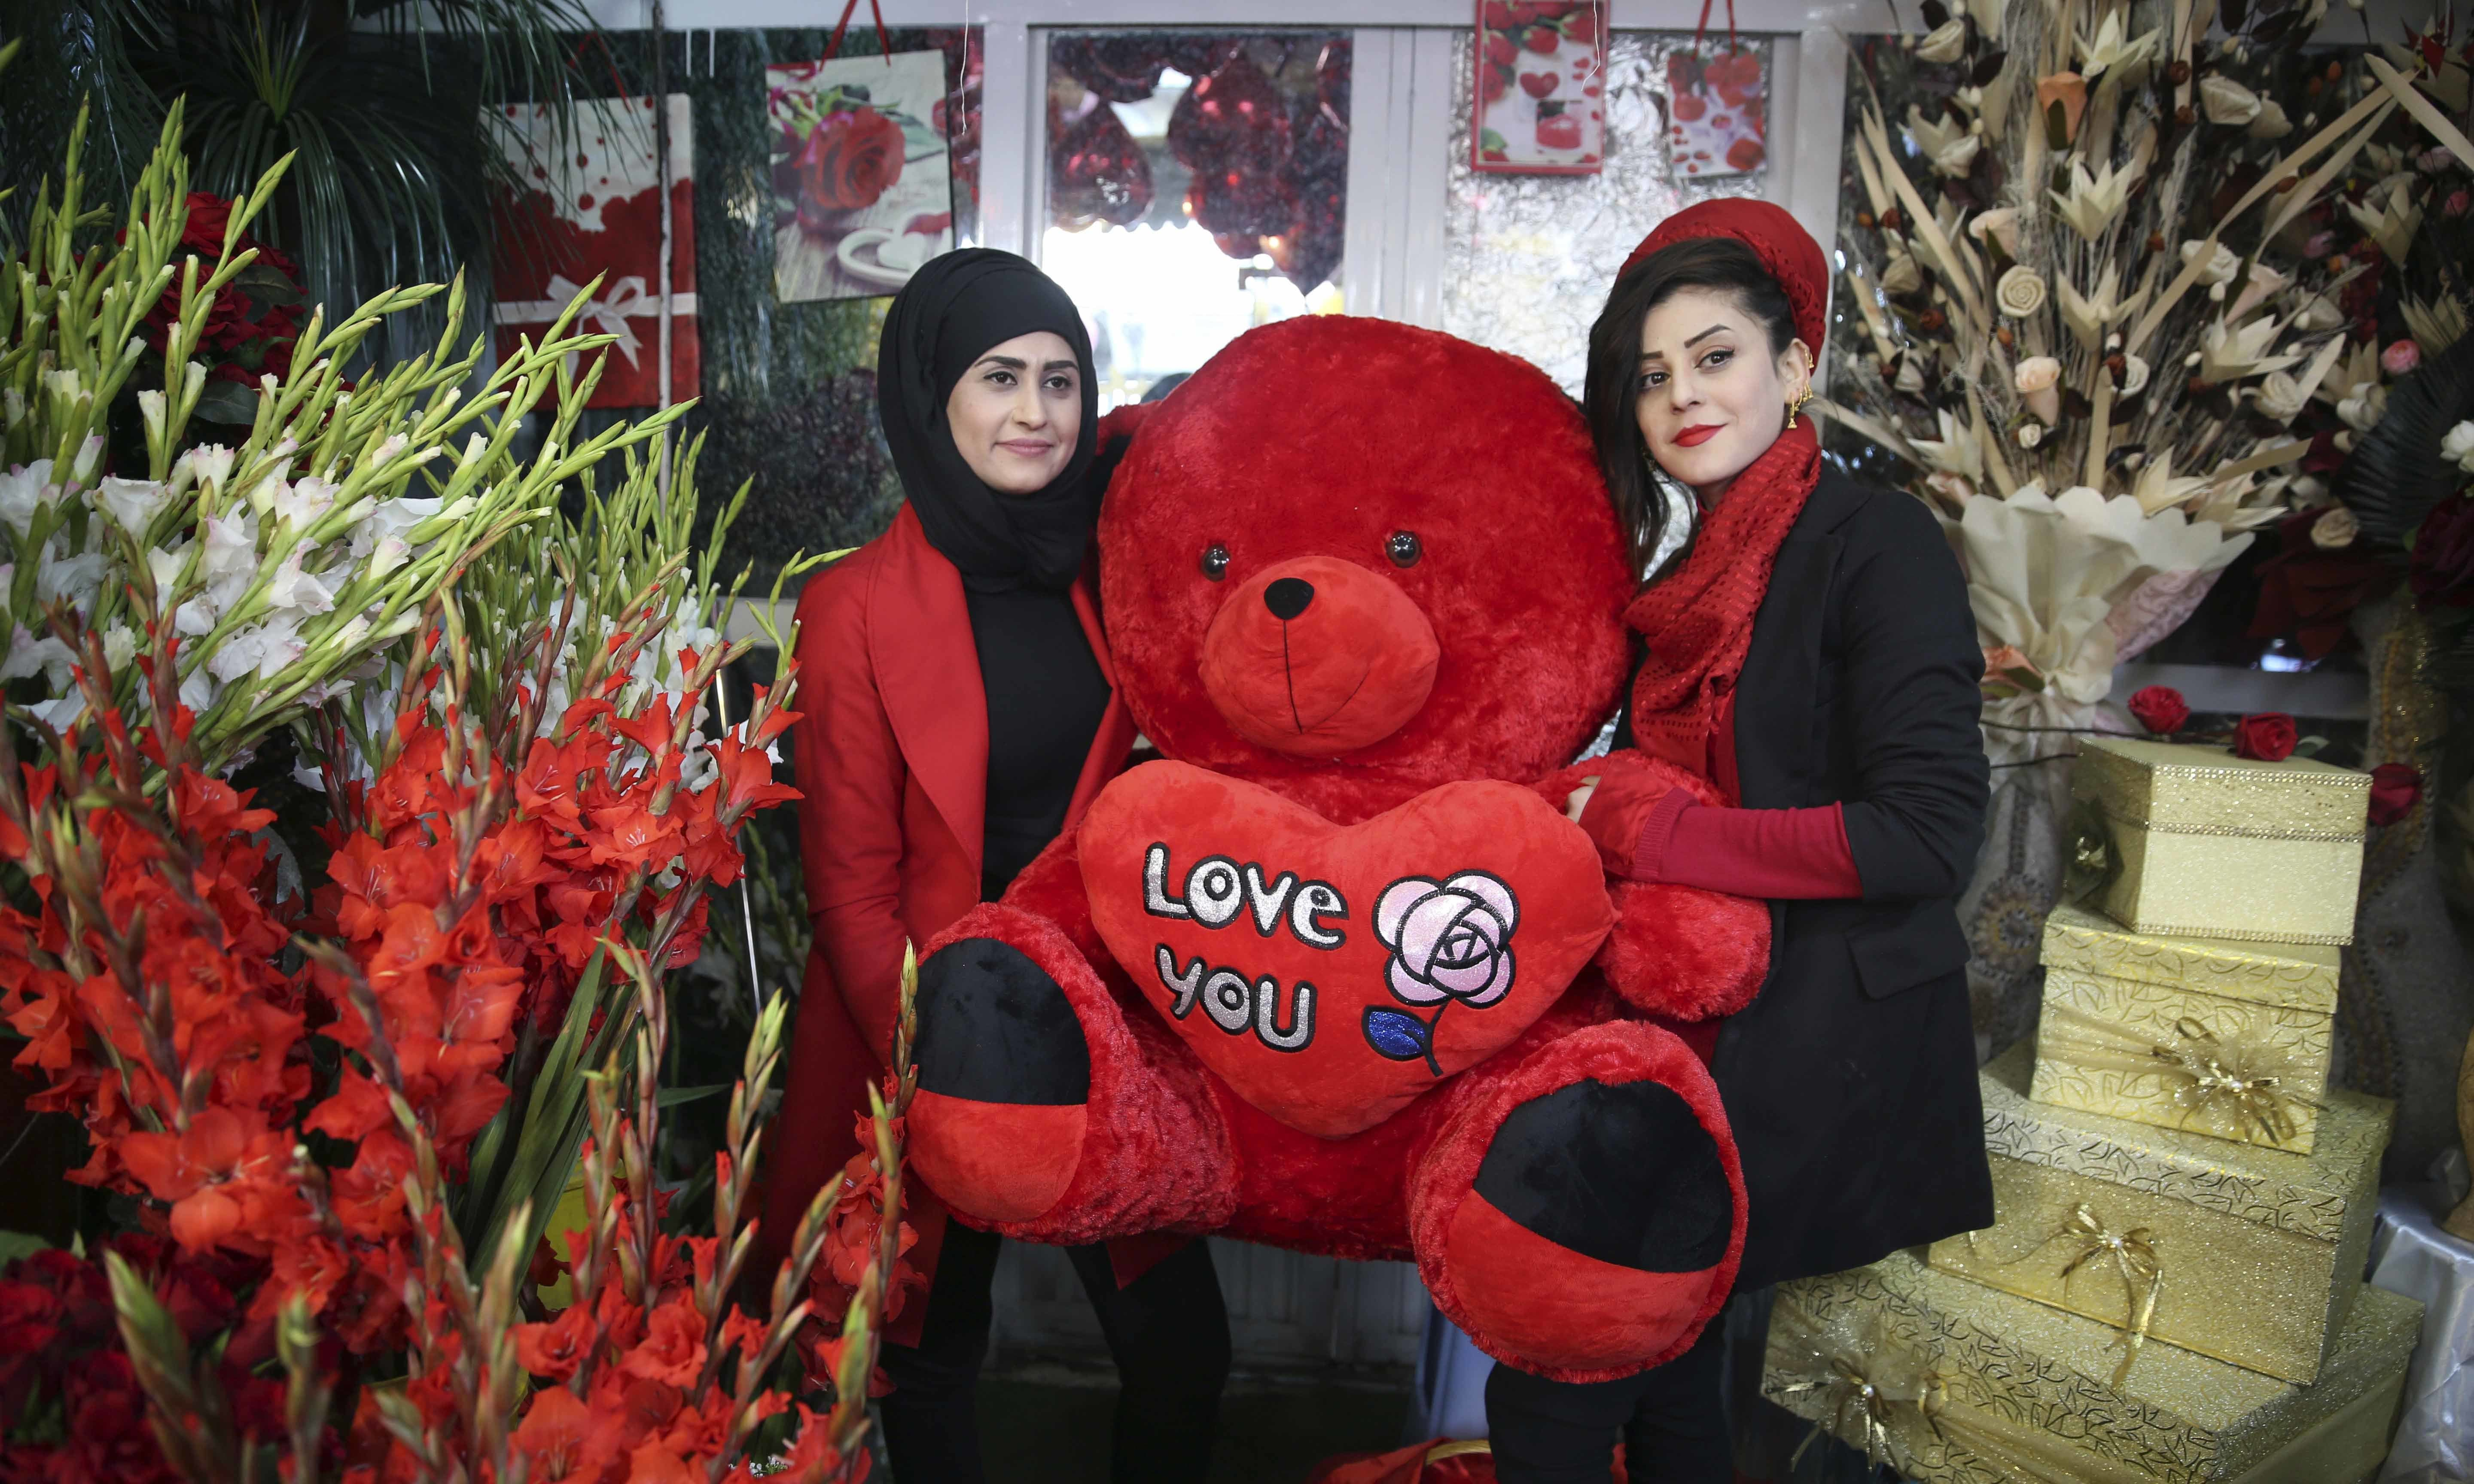 Women hold a teddy bear as they pose for a photograph inside a flower shop on Valentine's Day in Kabul, Afghanistan on Friday. — AP